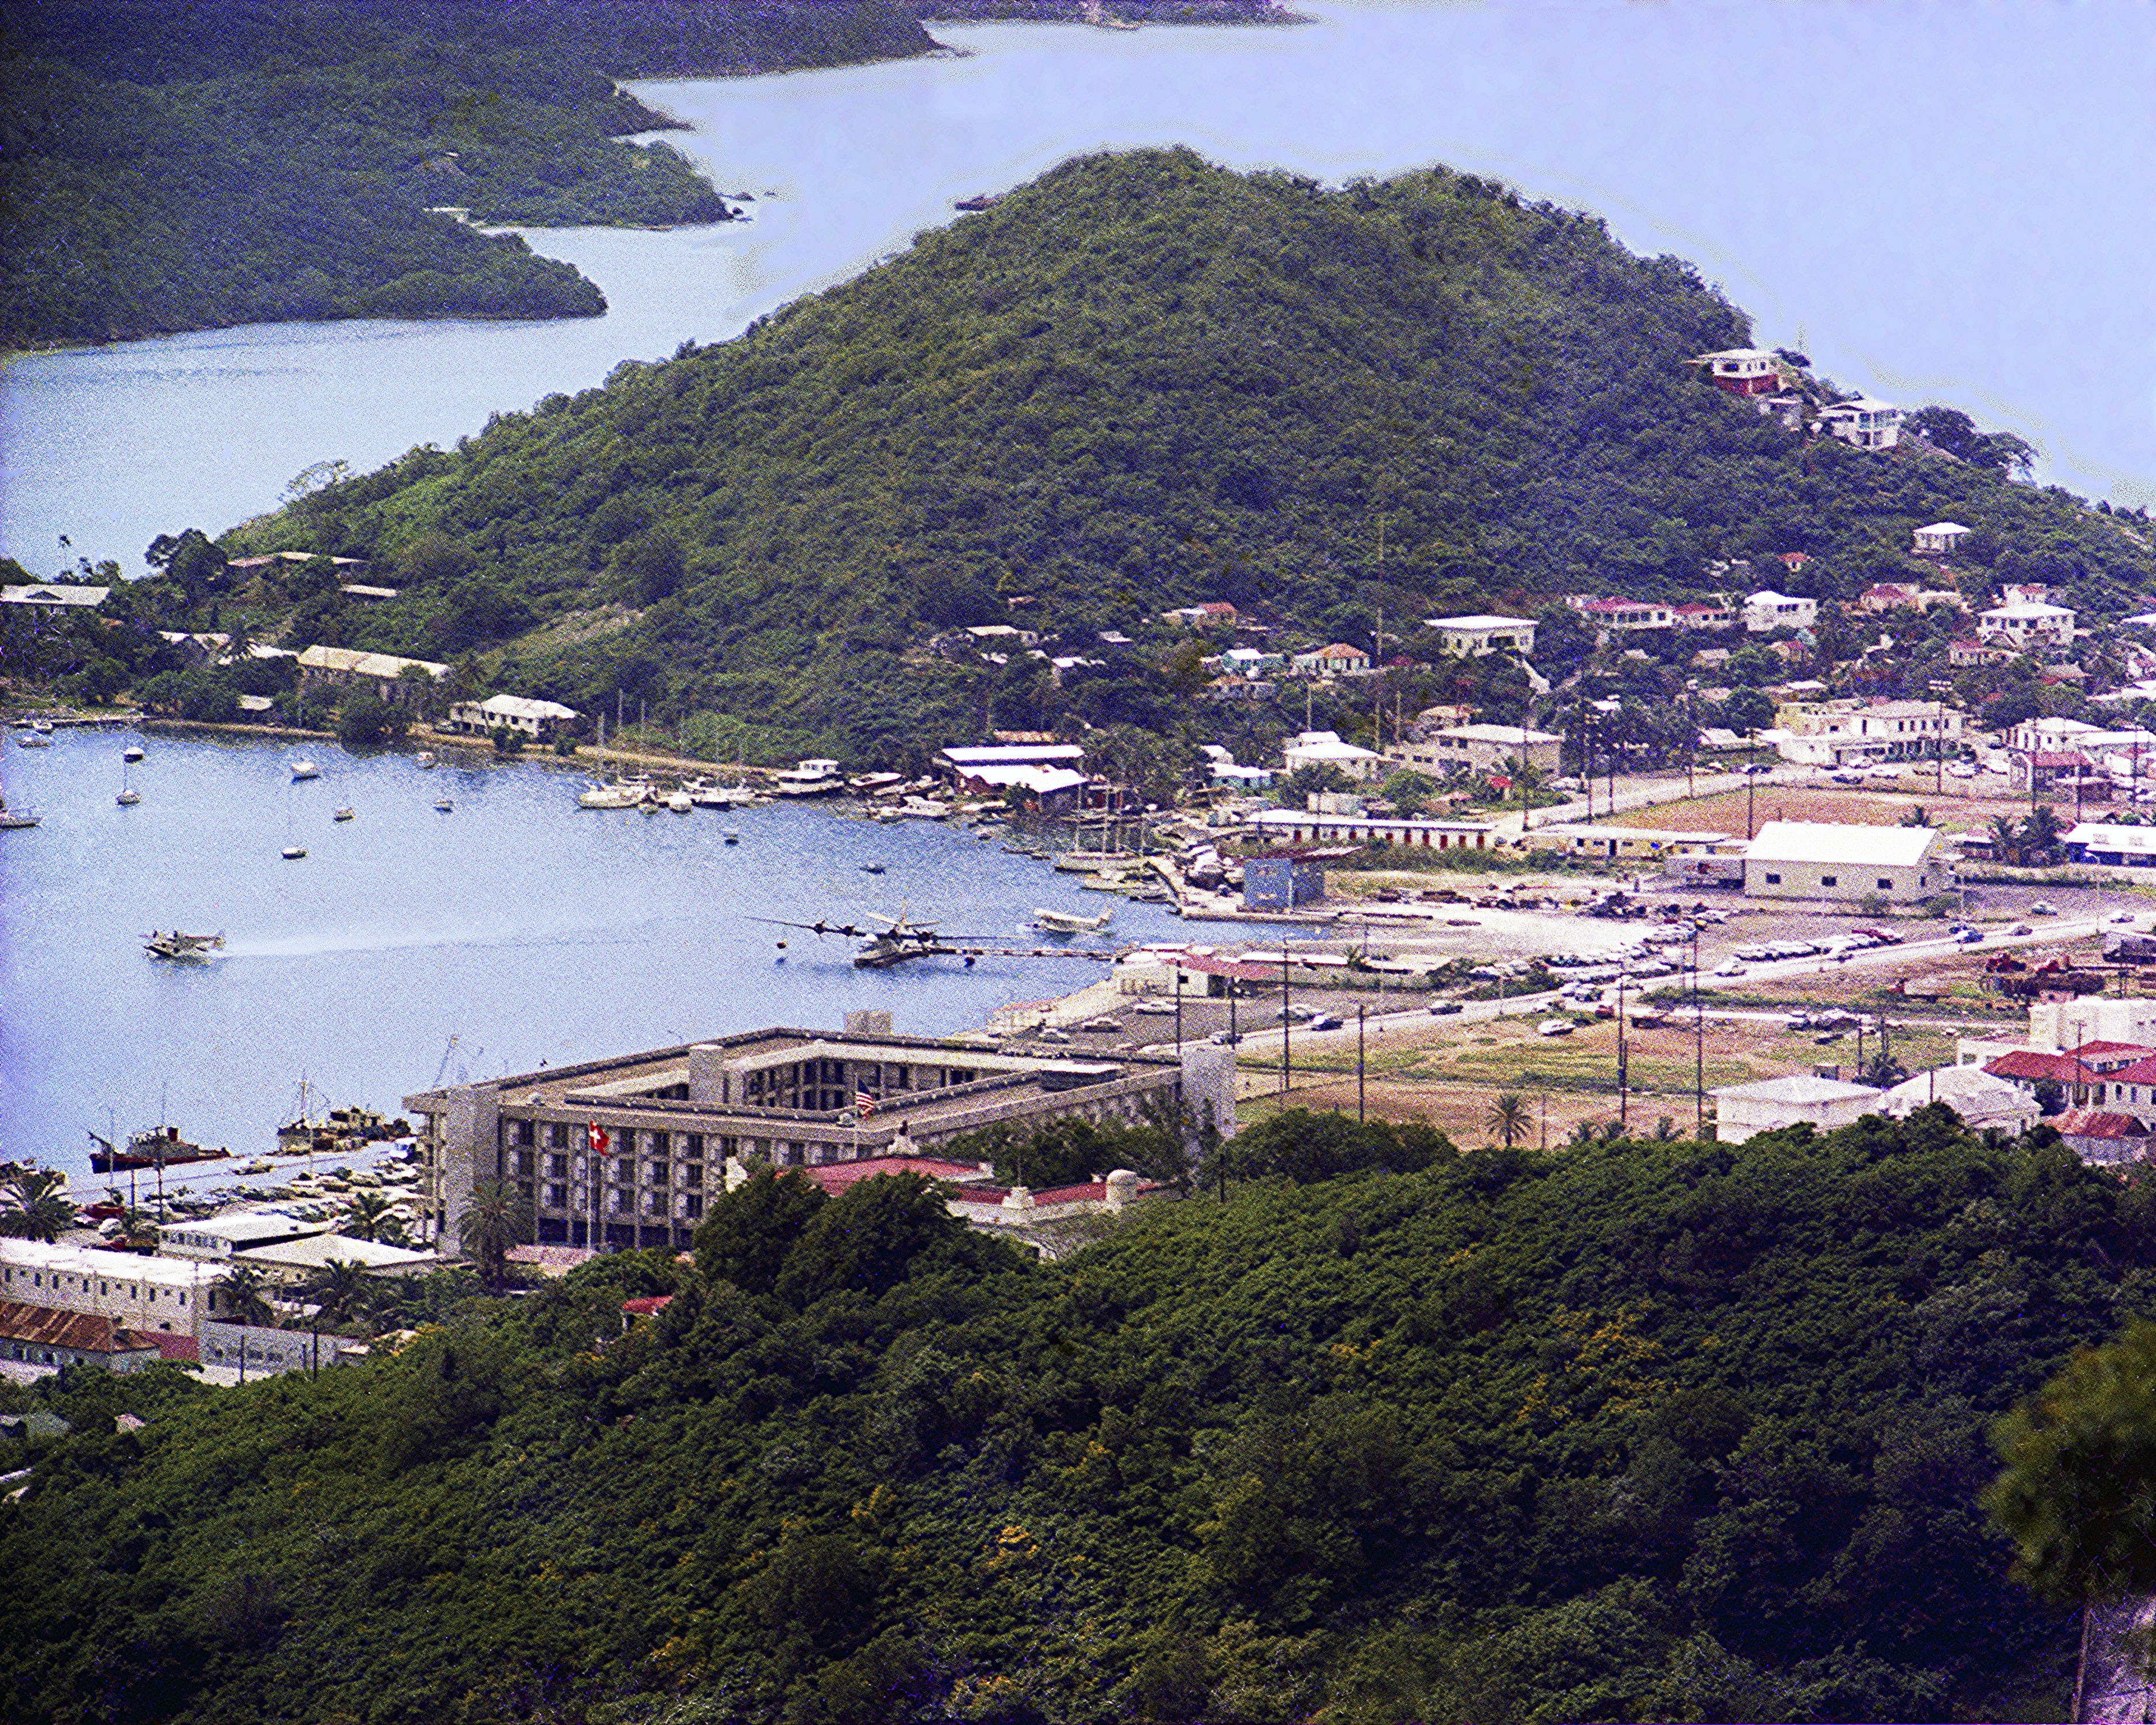 VS-44 at dock in STT